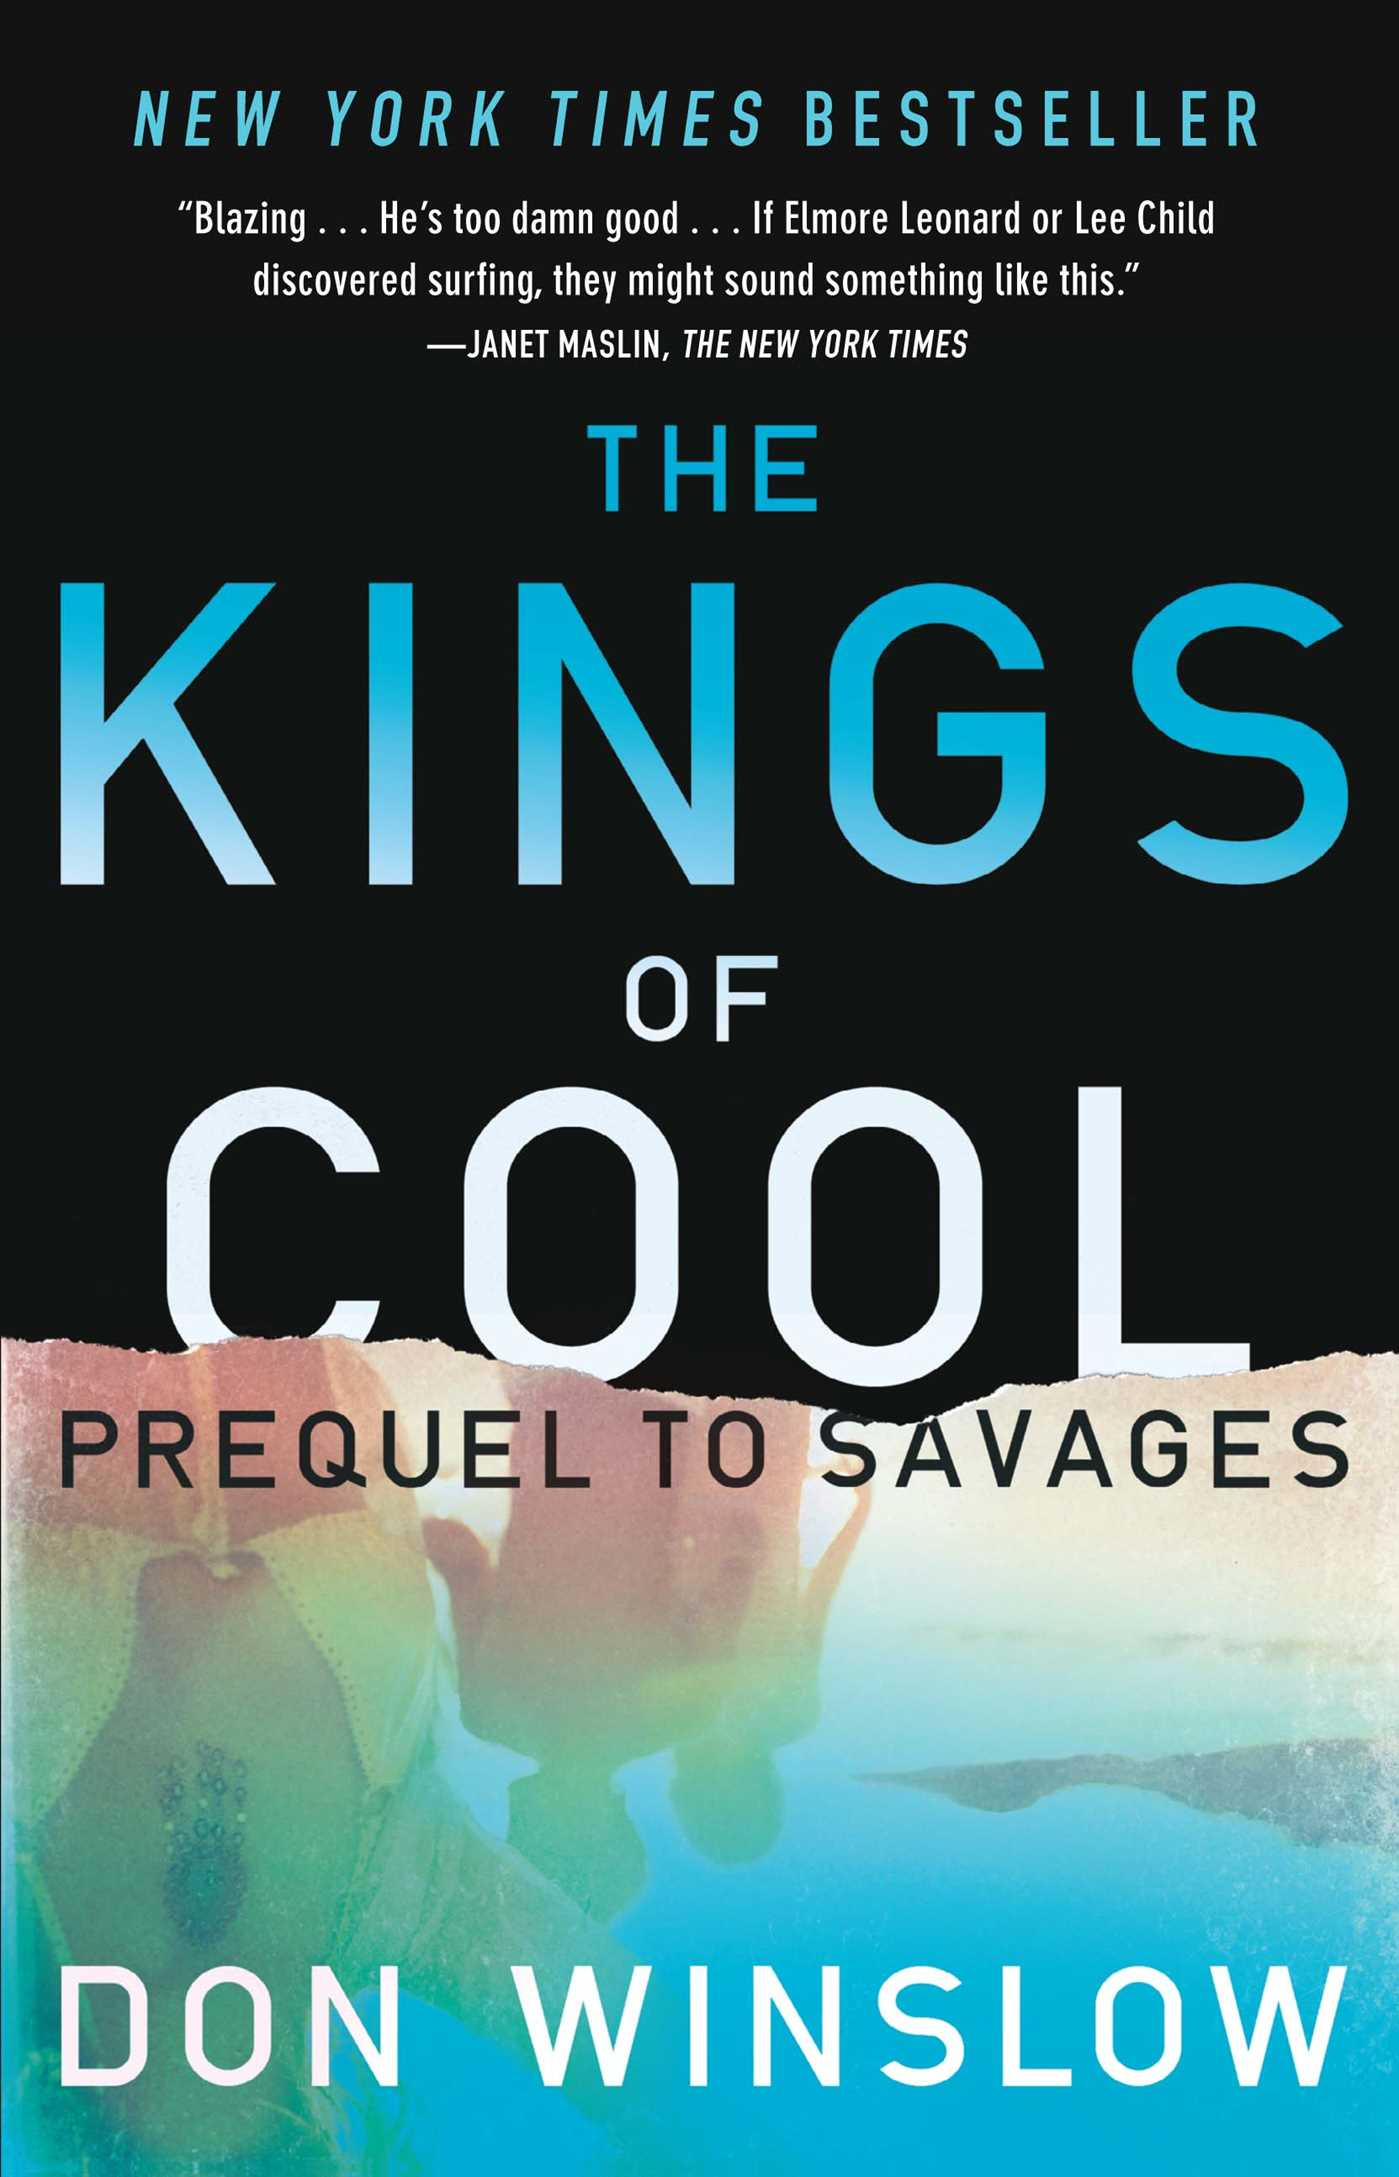 Cool Book Cover Uk : The kings of cool book by don winslow official